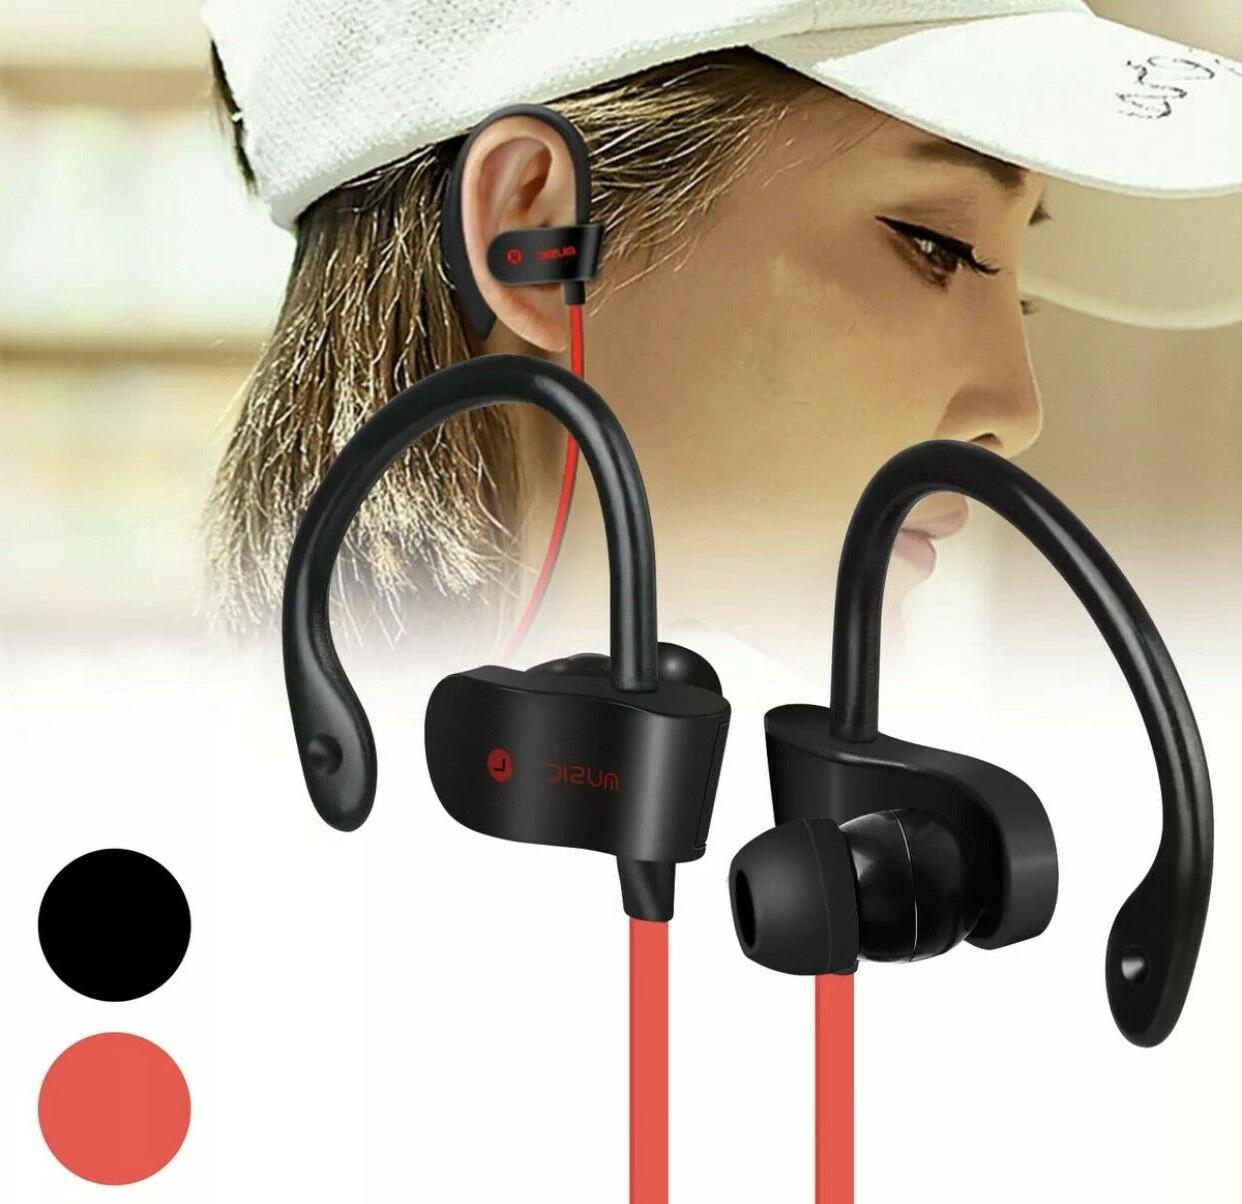 Sweatproof Bluetooth Headphones HD Wireless Headset In-Ear Earbuds Stereo Earbud